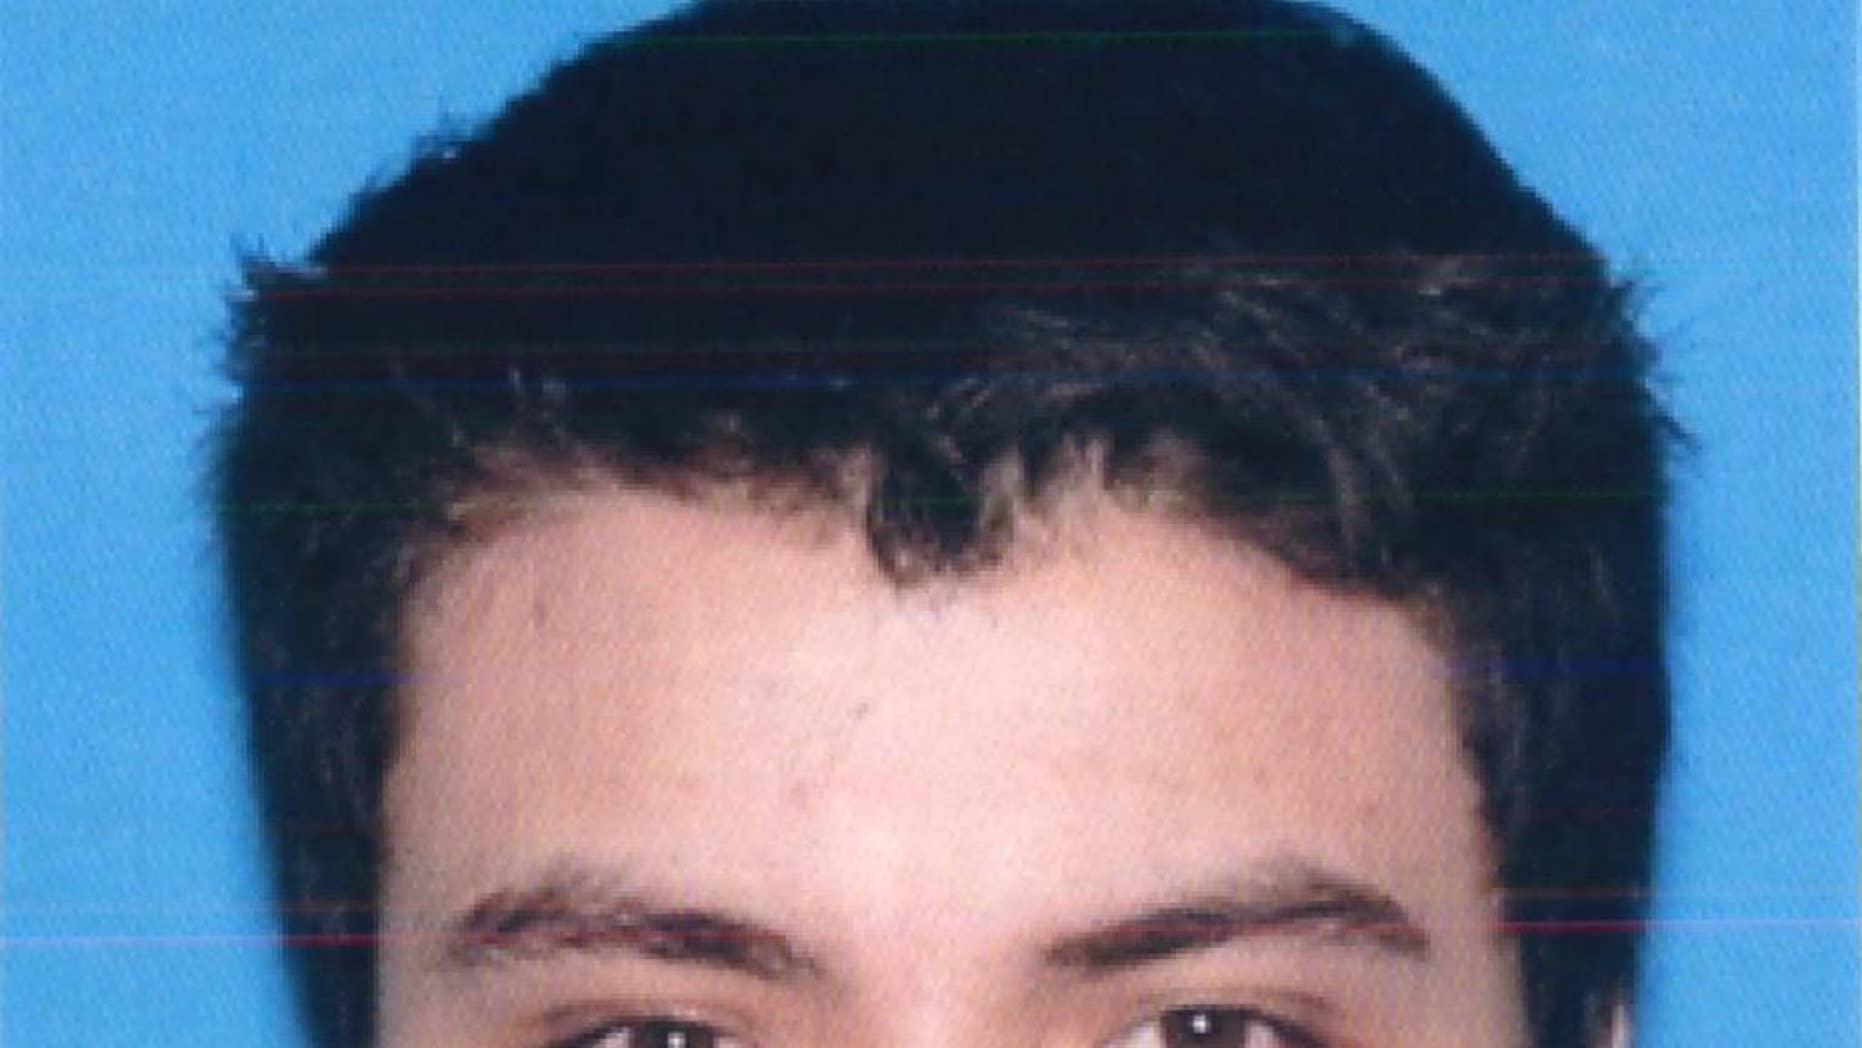 FILE- This undated file photo from the California Department of Motor Vehicles shows the driver license photo of Elliot Rodger, 22, who went on a murderous rampage Friday, May 23, 2014. Authorities concluded that Rodger who killed six people and injured 13 others near the University of California, Santa Barbara, last year acted alone. The Sheriff's Office released a report Thursday, Feb. 19, 2015, on its eight-month investigation into the massacre. (AP Photo/California DMV, File)